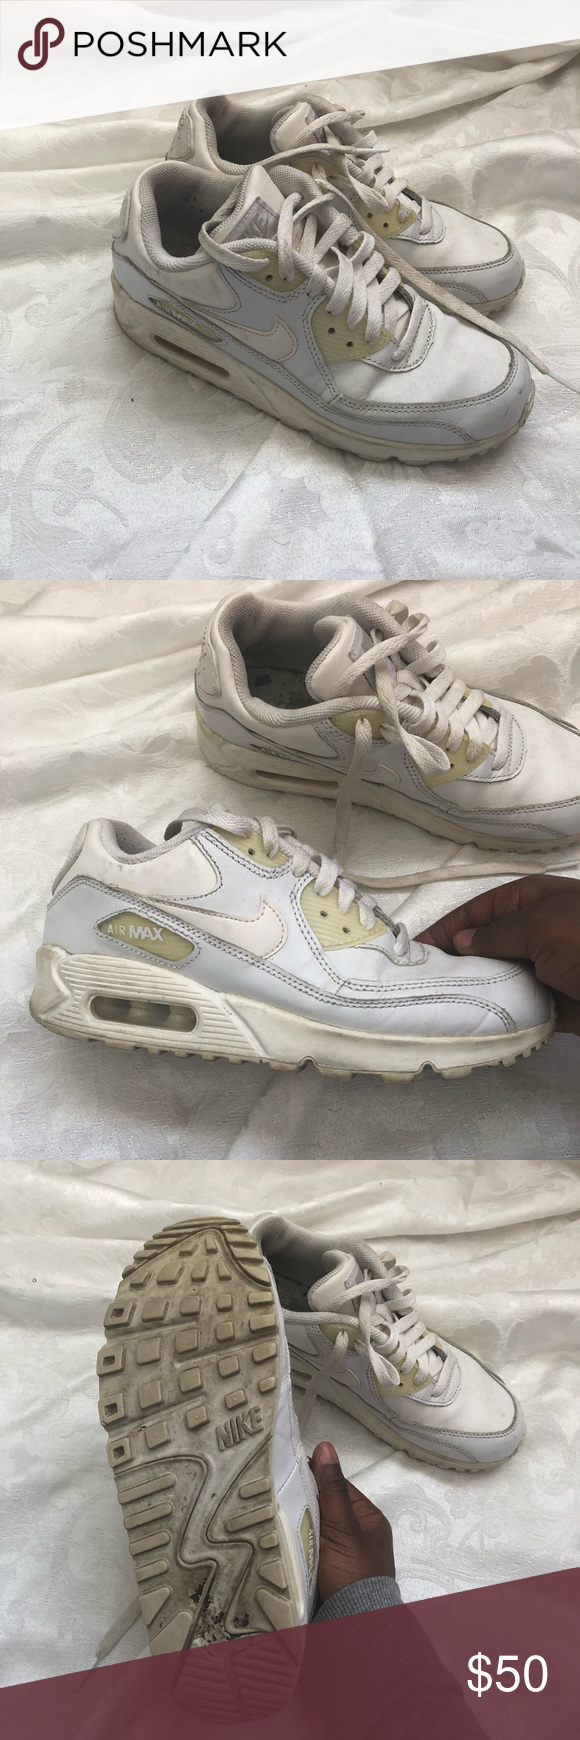 Nike Air Max 90 Purchased second hand